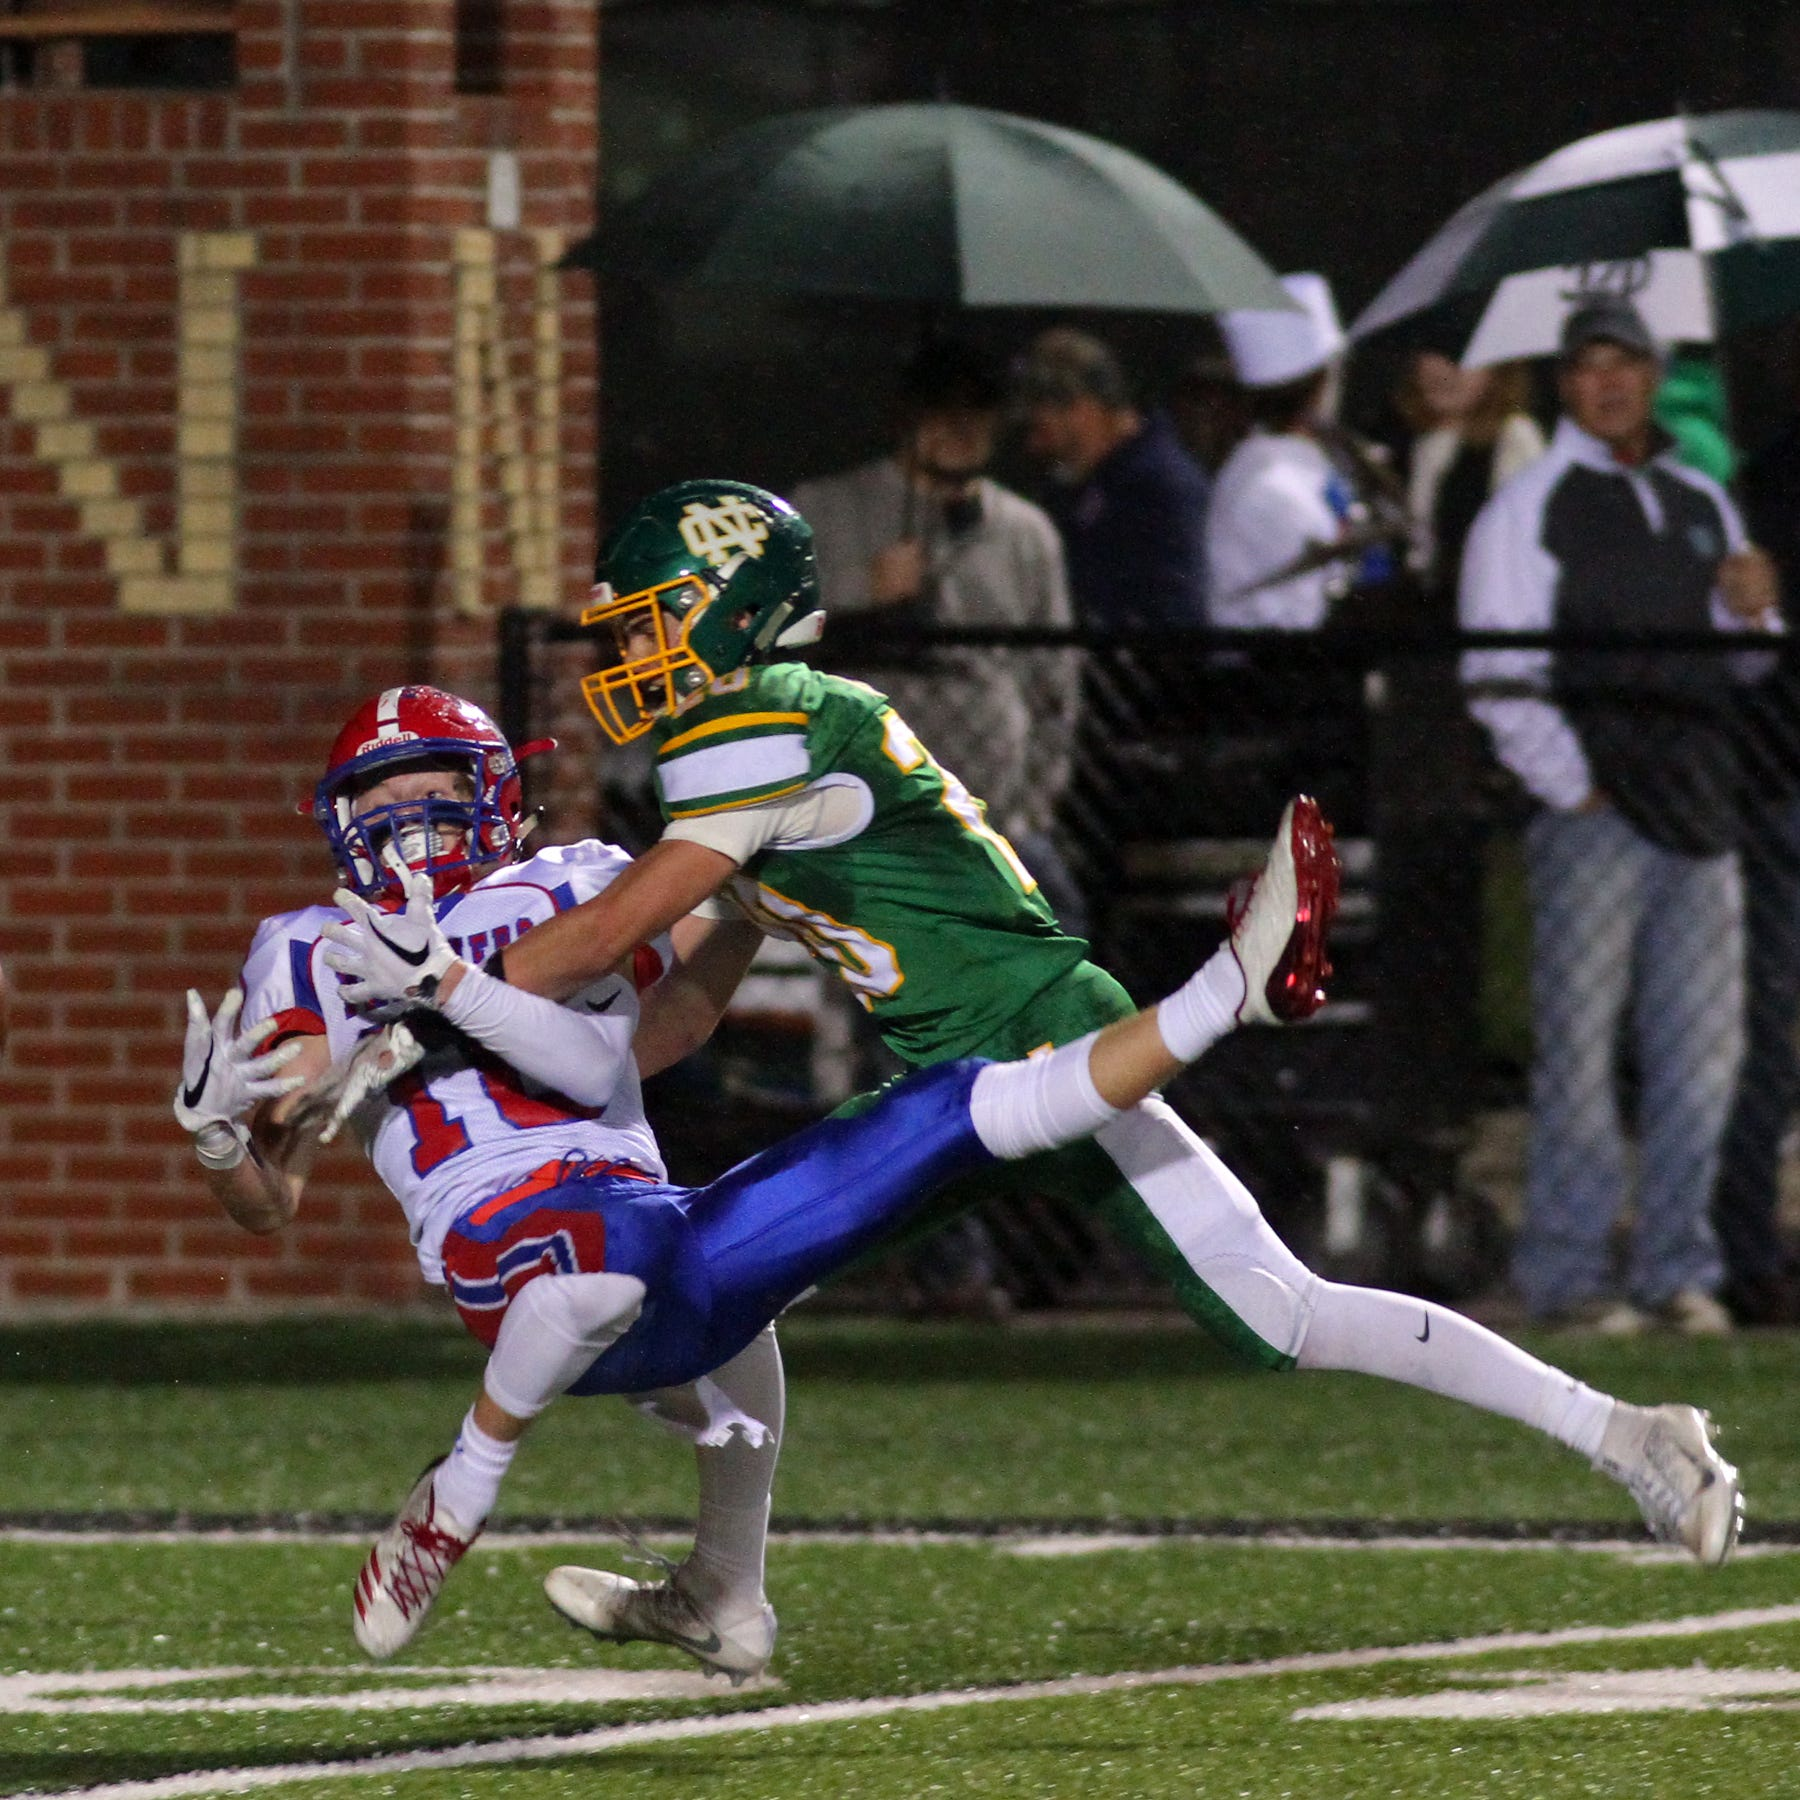 Licking Valley's air assault sinks Newark Catholic